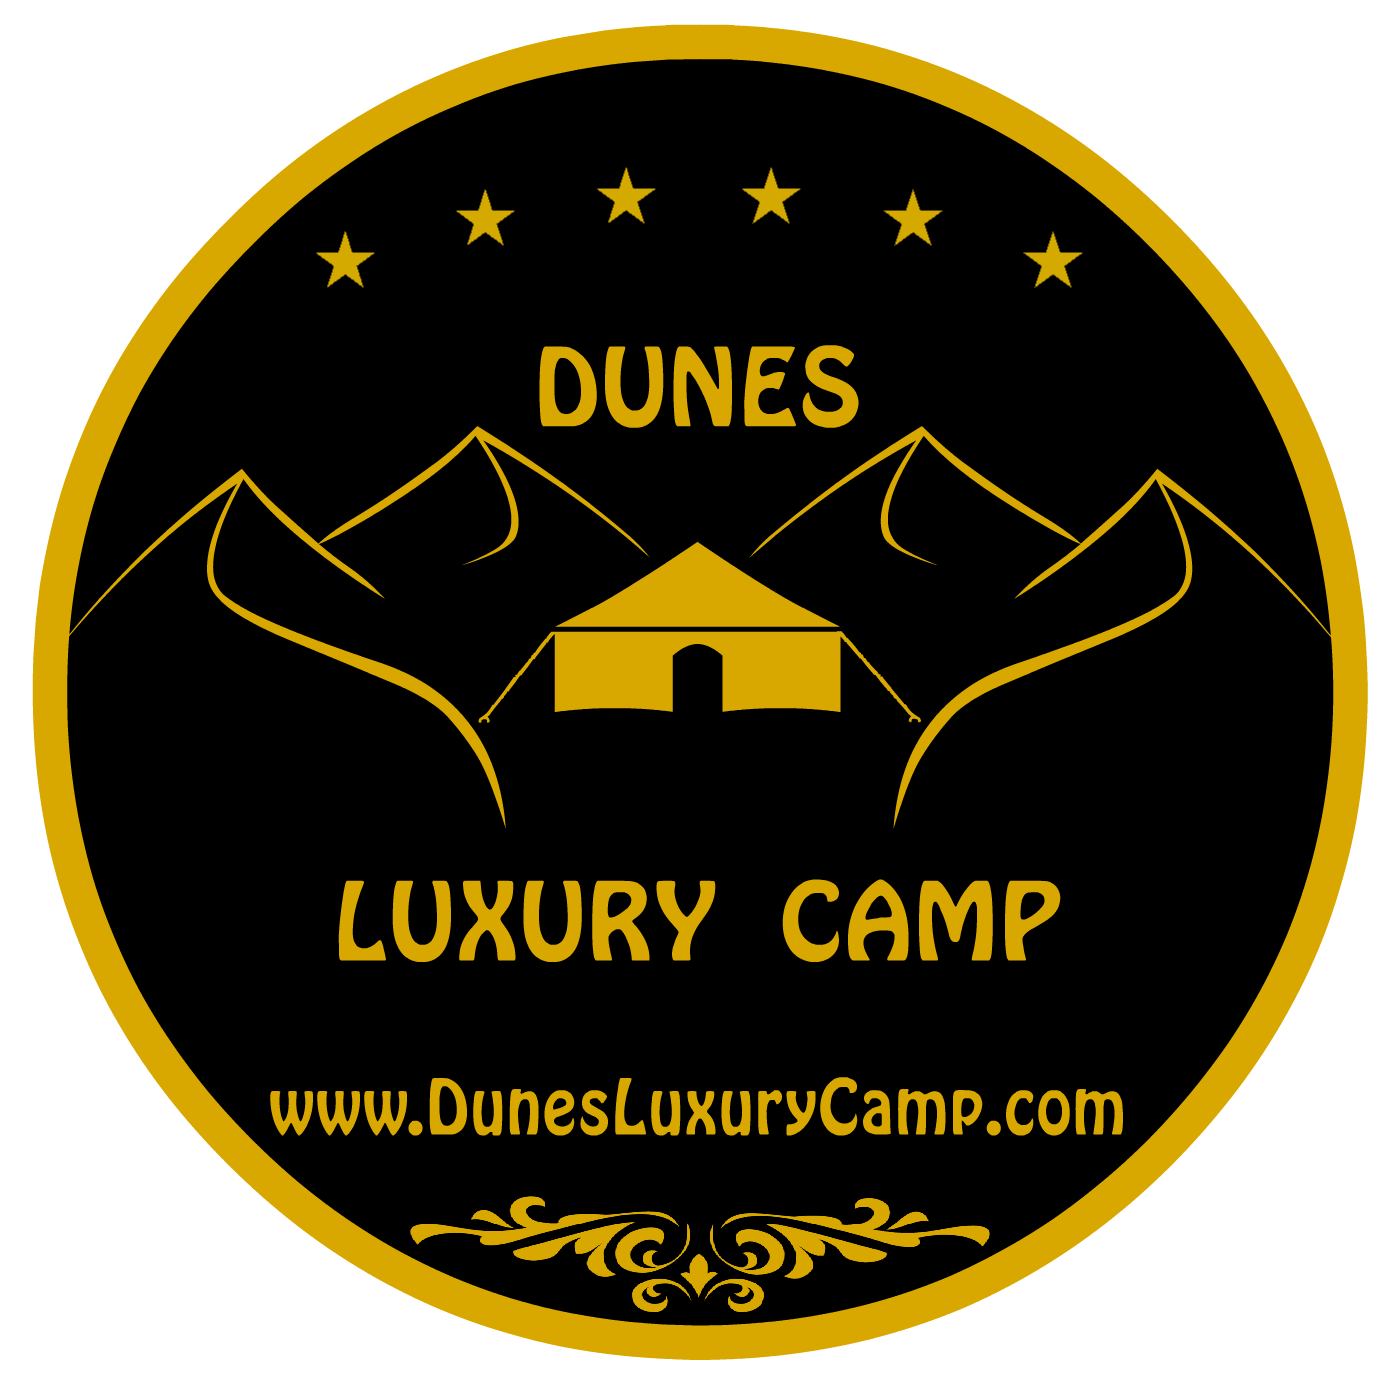 dunes-luxury-camp